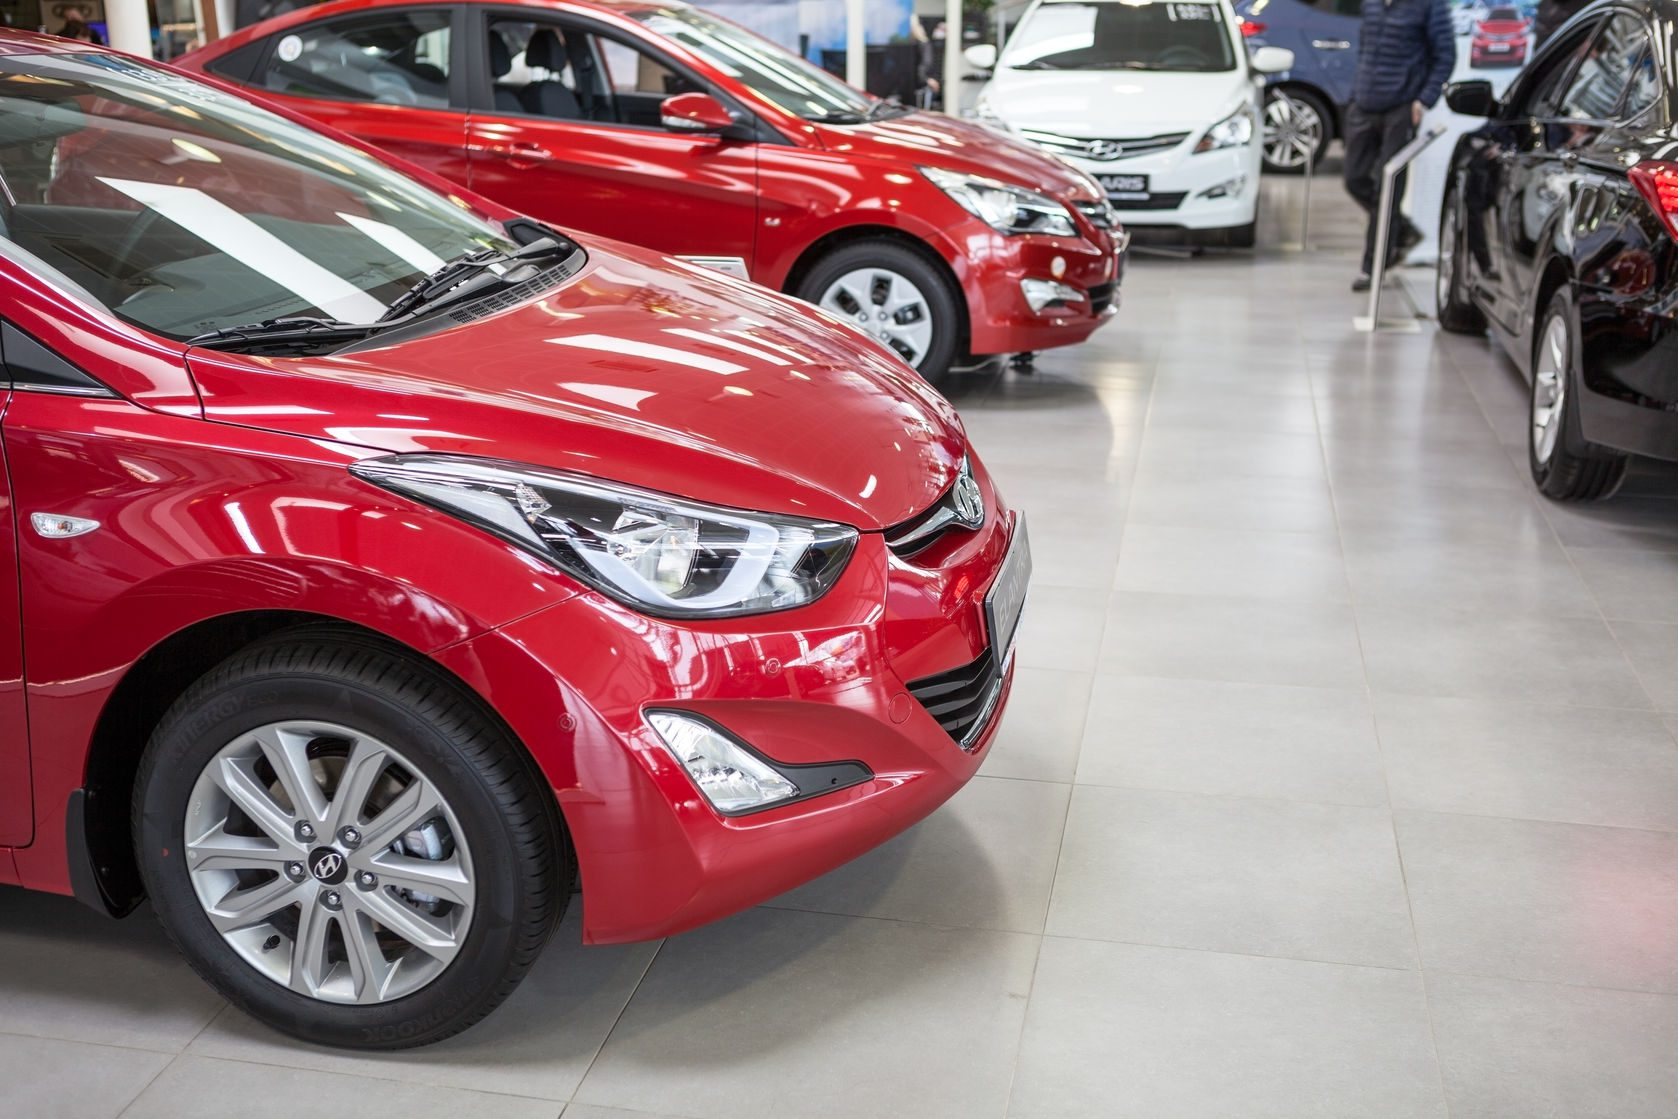 st. petersburg, russia - circa apr, 2015: the hyundai dealership showroom with entry models of vehicles. the rolf lahta is a official dealer of hyundai